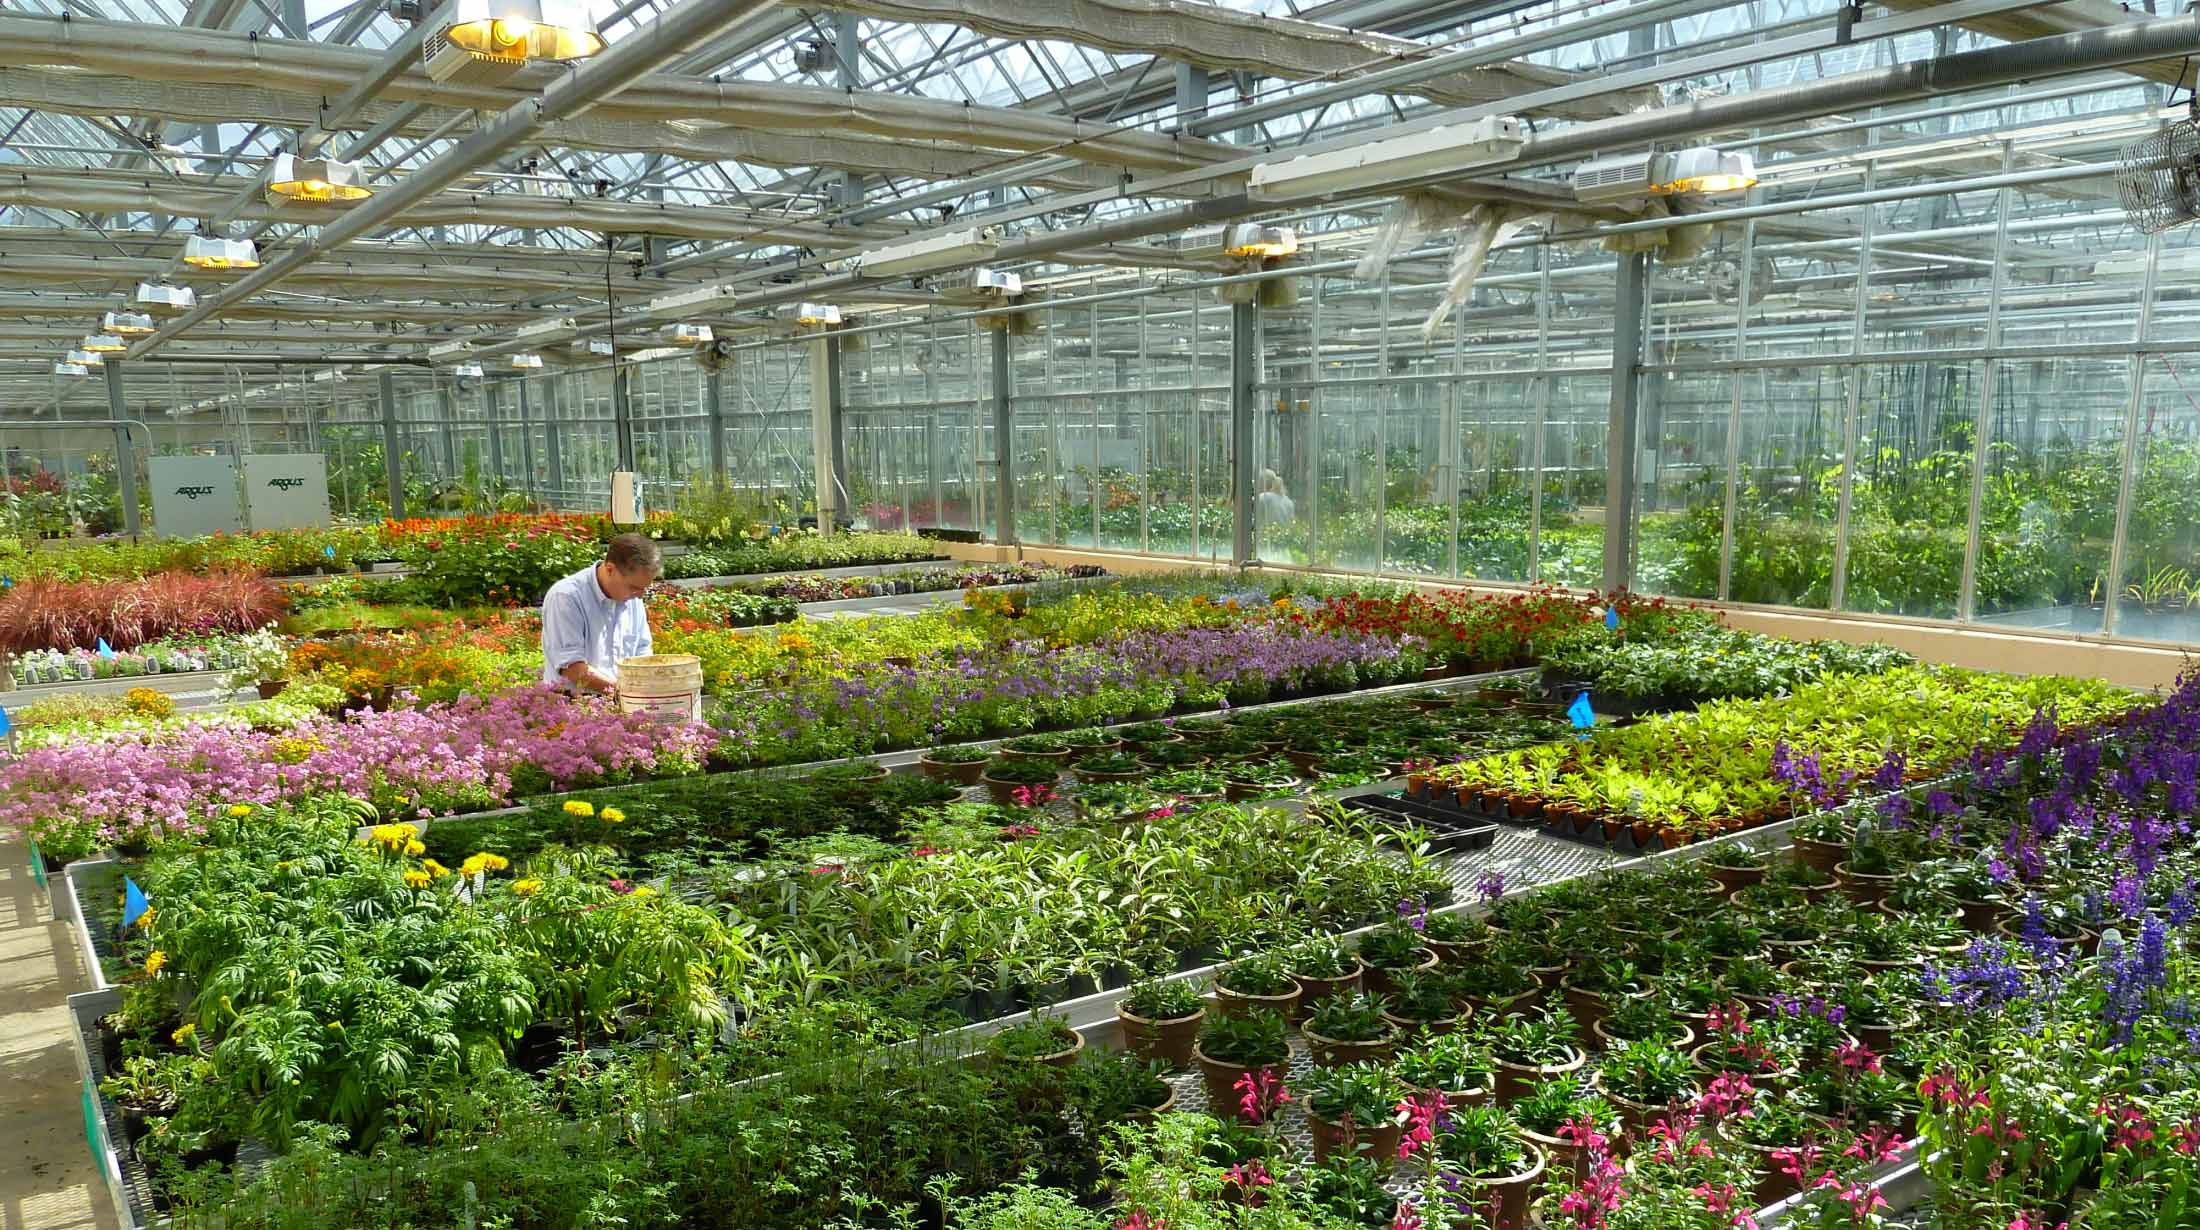 Greenhouse Plans Design Facility on lean to greenhouse plans, pvc greenhouse plans, winter greenhouse plans, a-frame greenhouse plans, big greenhouse plans, greenhouse ideas, greenhouse windows, easy greenhouse plans, homemade greenhouse plans, greenhouse cabinets, greenhouse garden designs, small greenhouse plans, wood greenhouse plans, hobby greenhouse plans, solar greenhouse plans, attached greenhouse plans, greenhouse layout, diy greenhouse plans, backyard greenhouse plans, greenhouse architecture,